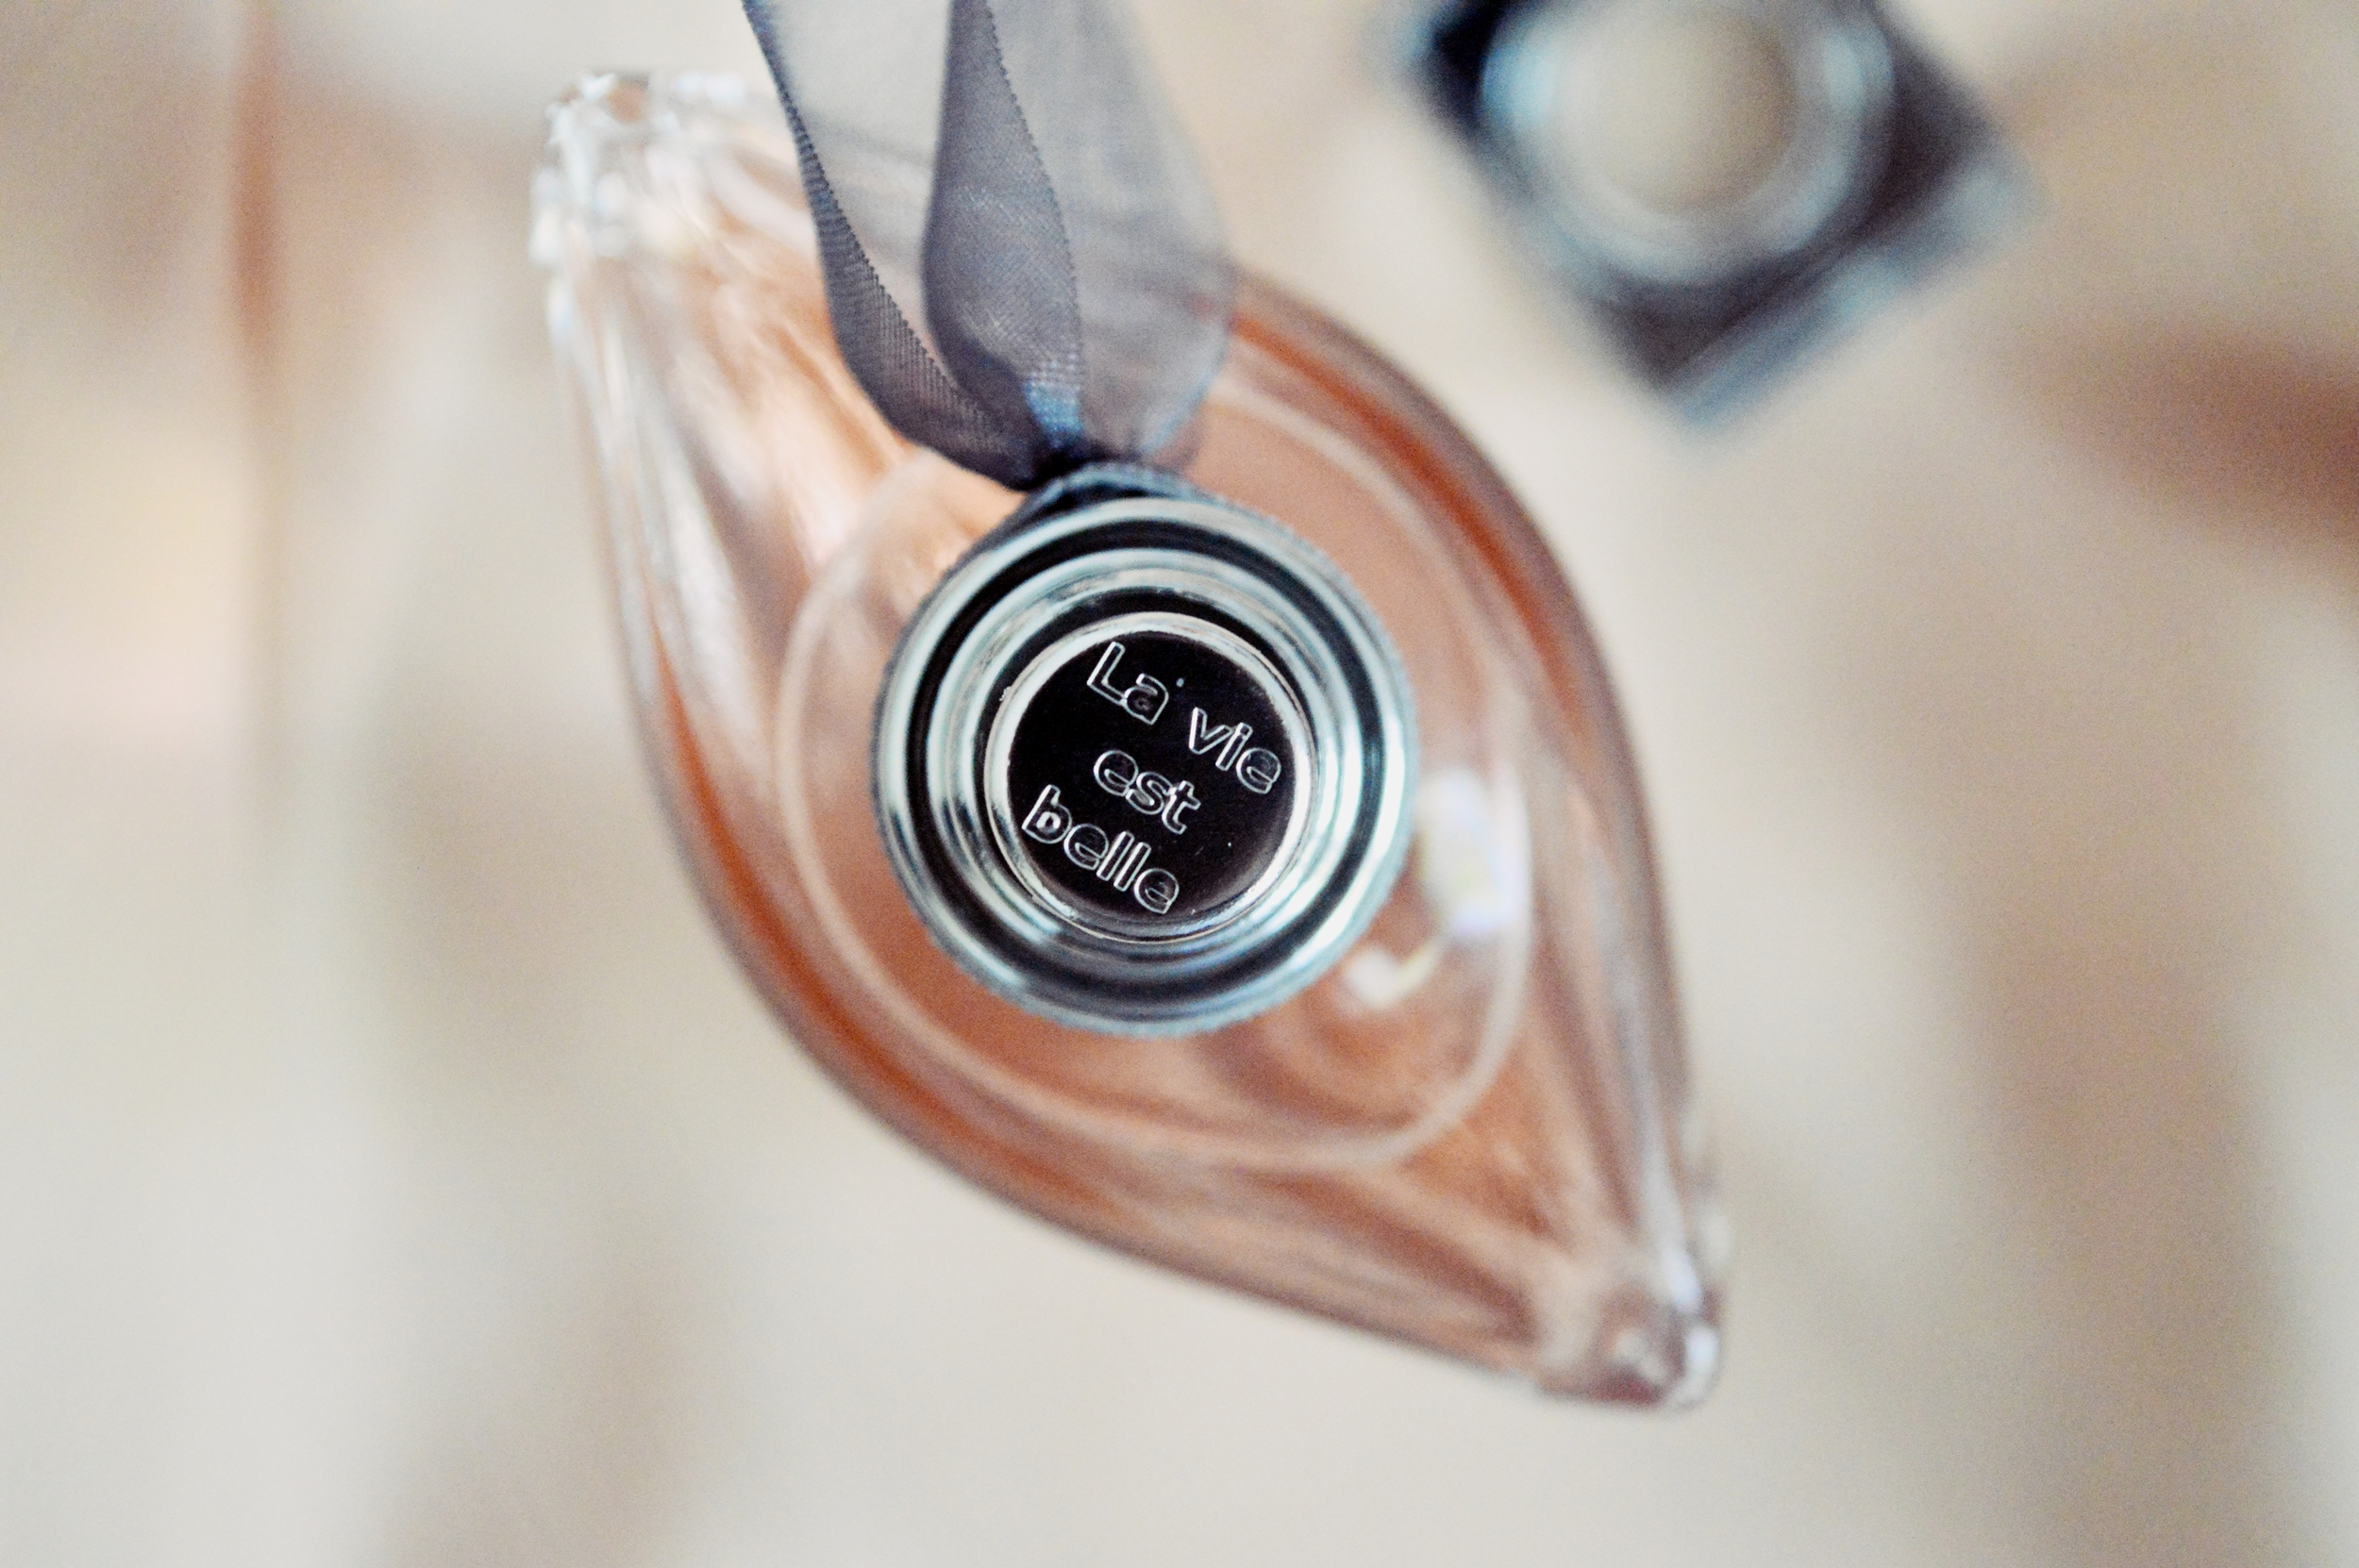 #MAKESOMEONEHAPPY with the iconic La vie est belle from Lancôme